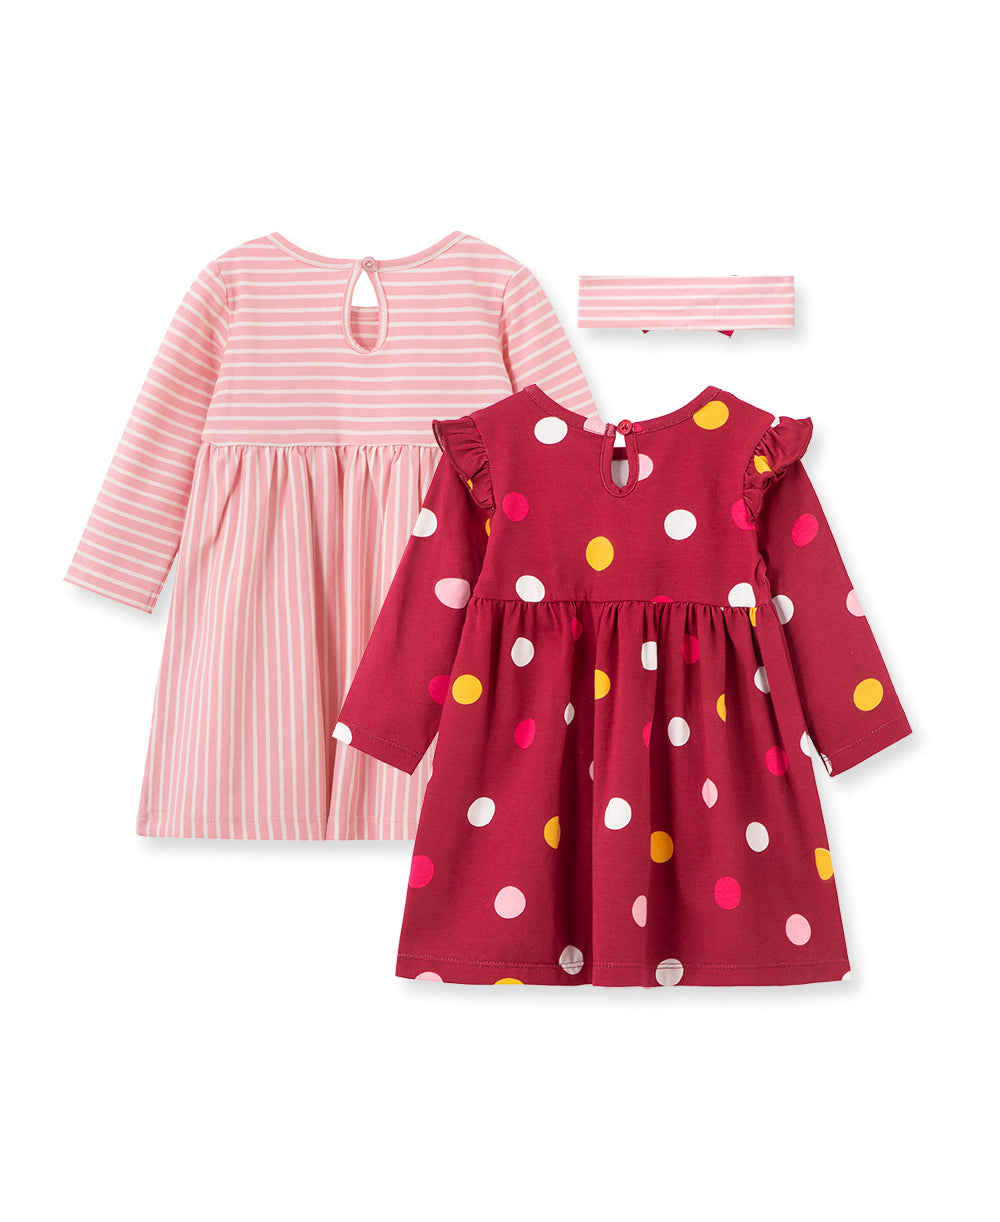 Polka Dot 2-Pack Toddler Dress Set